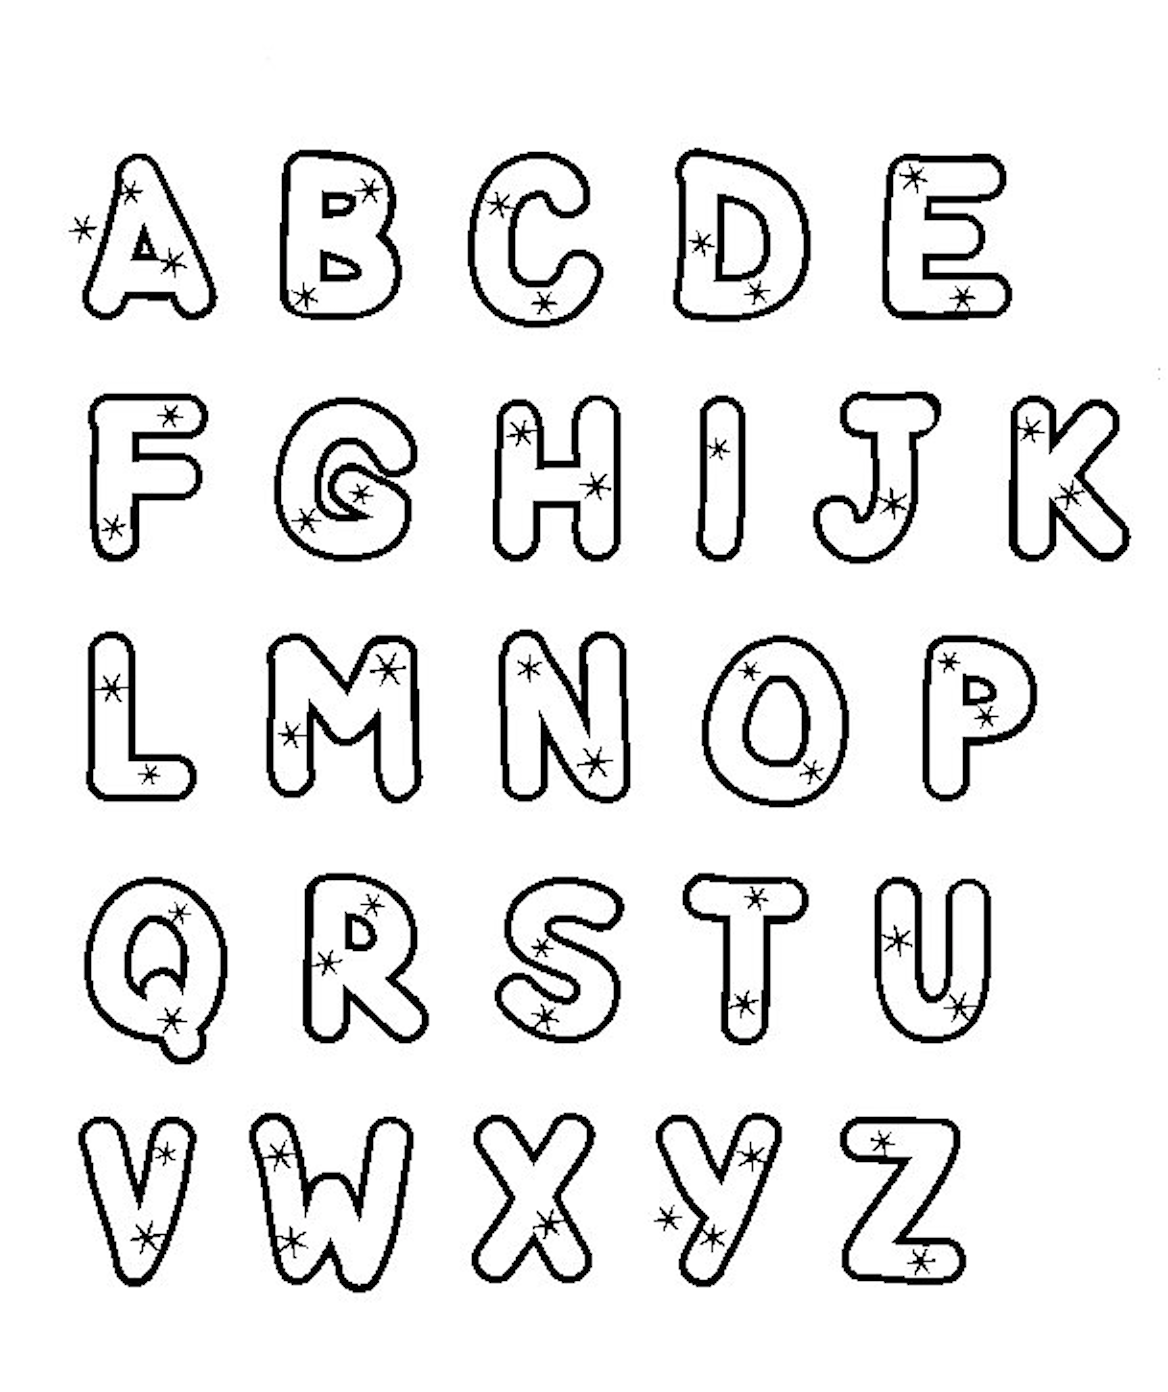 childrens colouring pages alphabet a z alphabet coloring pages download and print for free childrens alphabet colouring pages